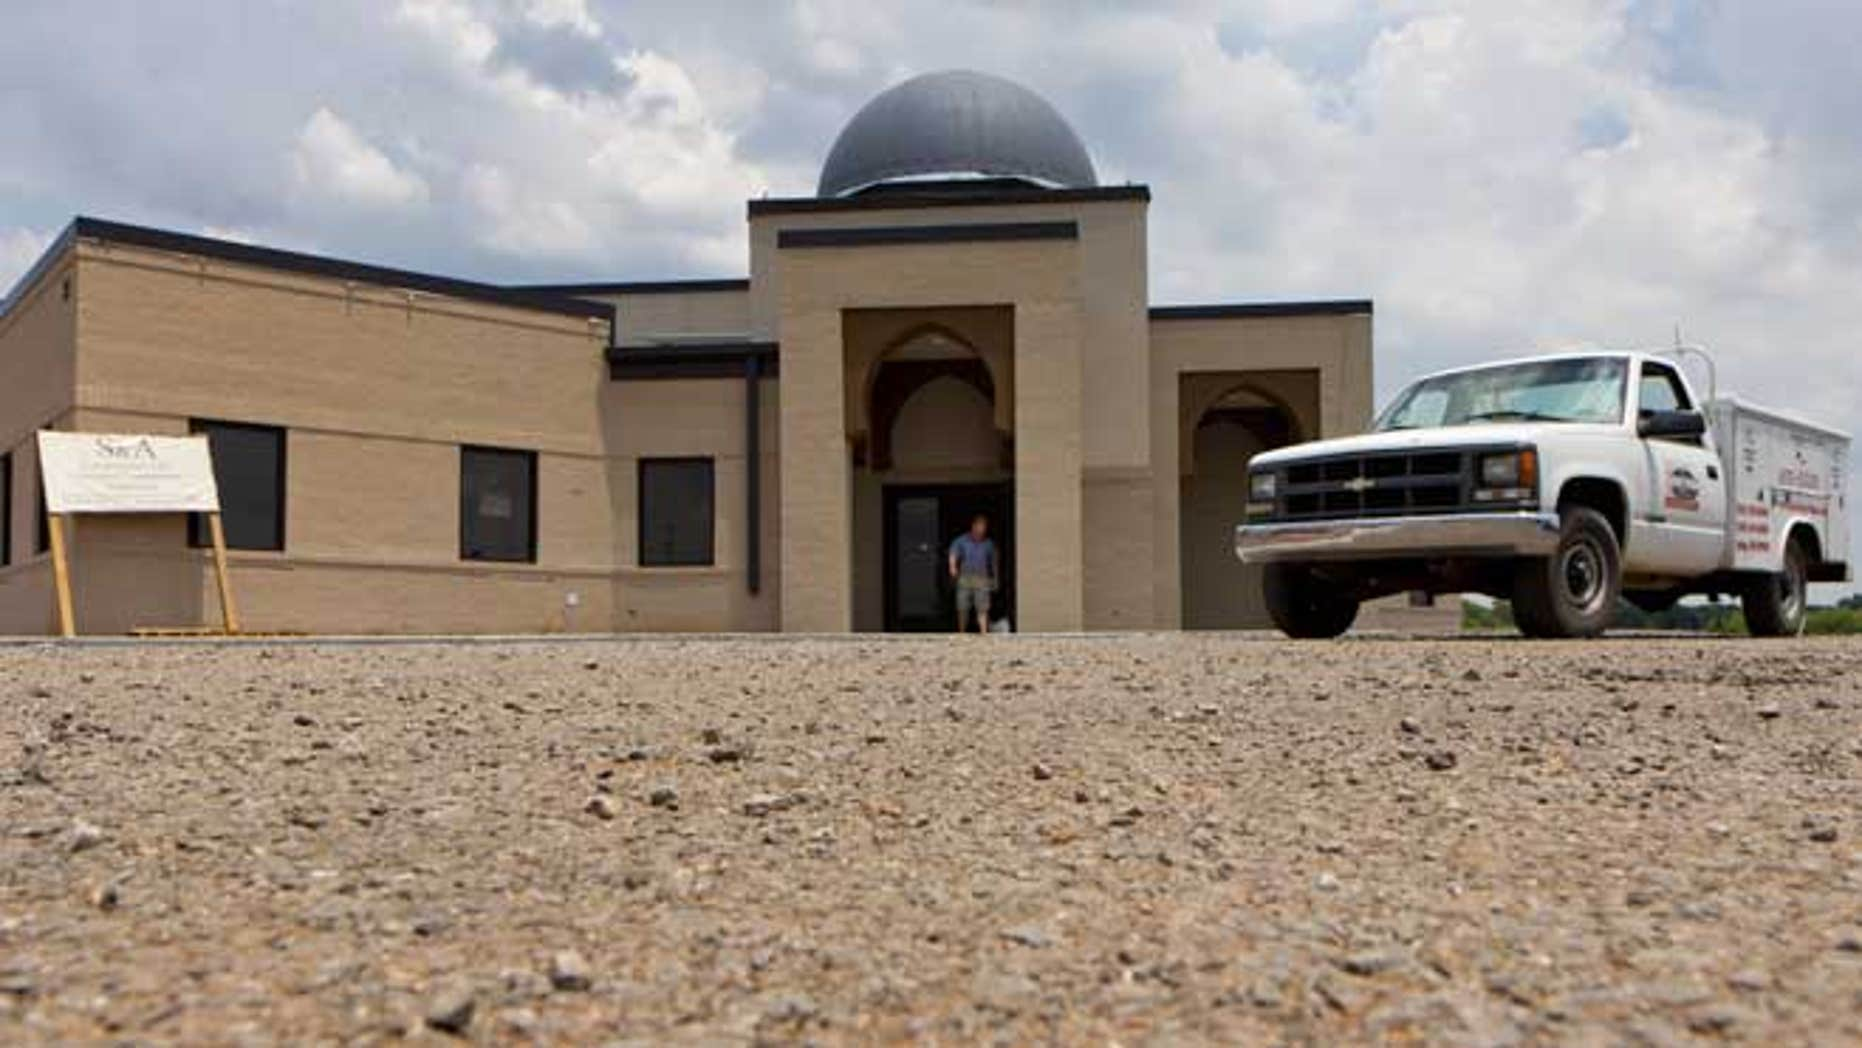 In a Thursday, June 21, 2012 file photo, a worker walks out of the construction site of a mosque being built in Murfreesboro, Tenn.